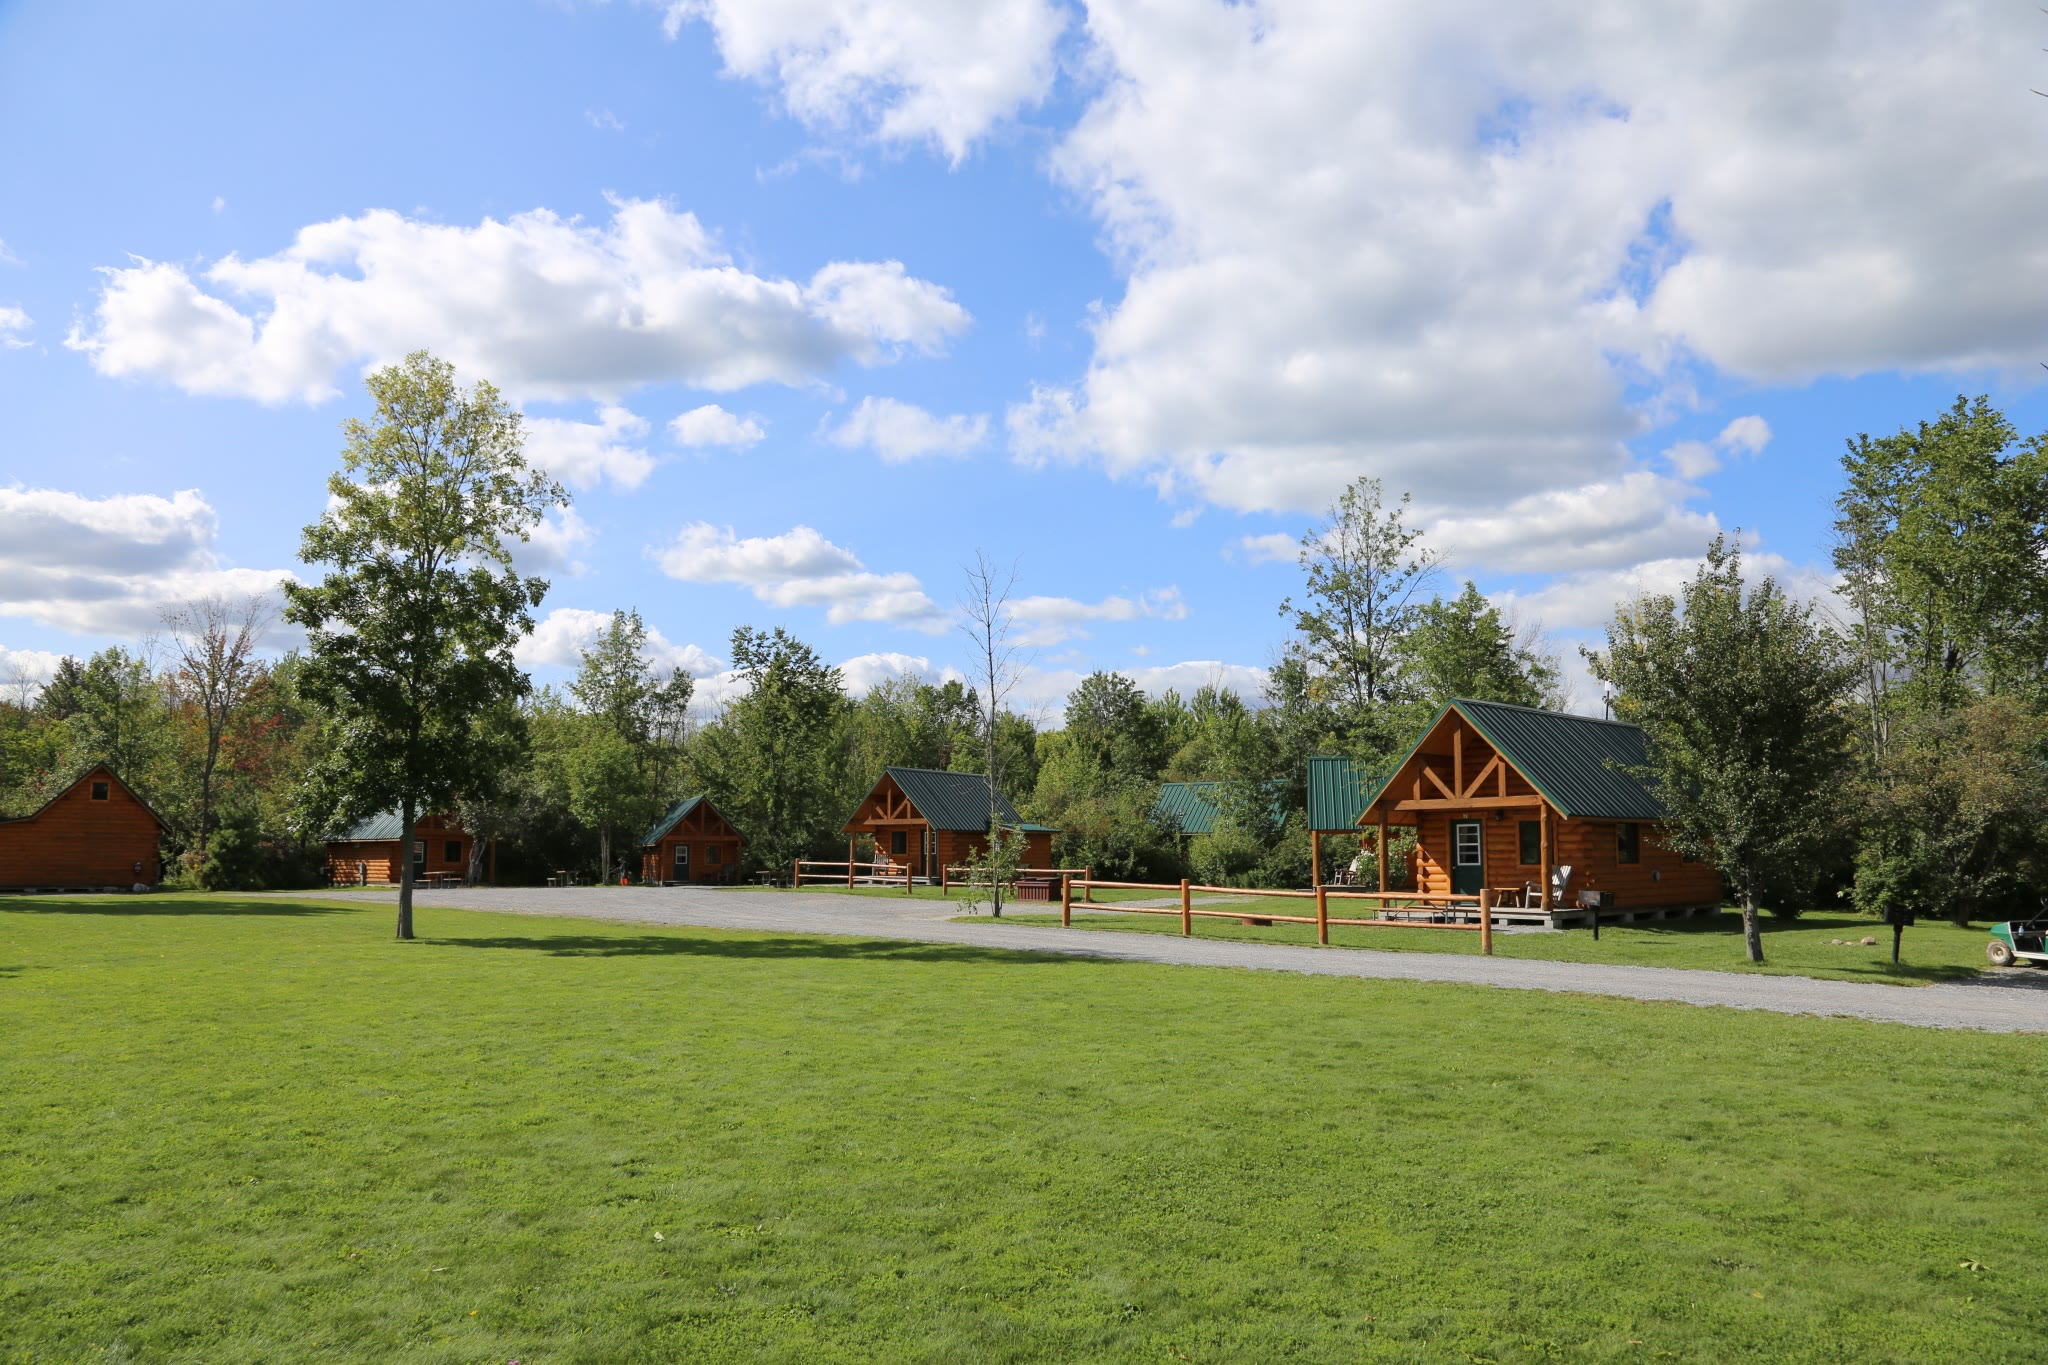 Deluxe cabins at Branches of Niagara campground